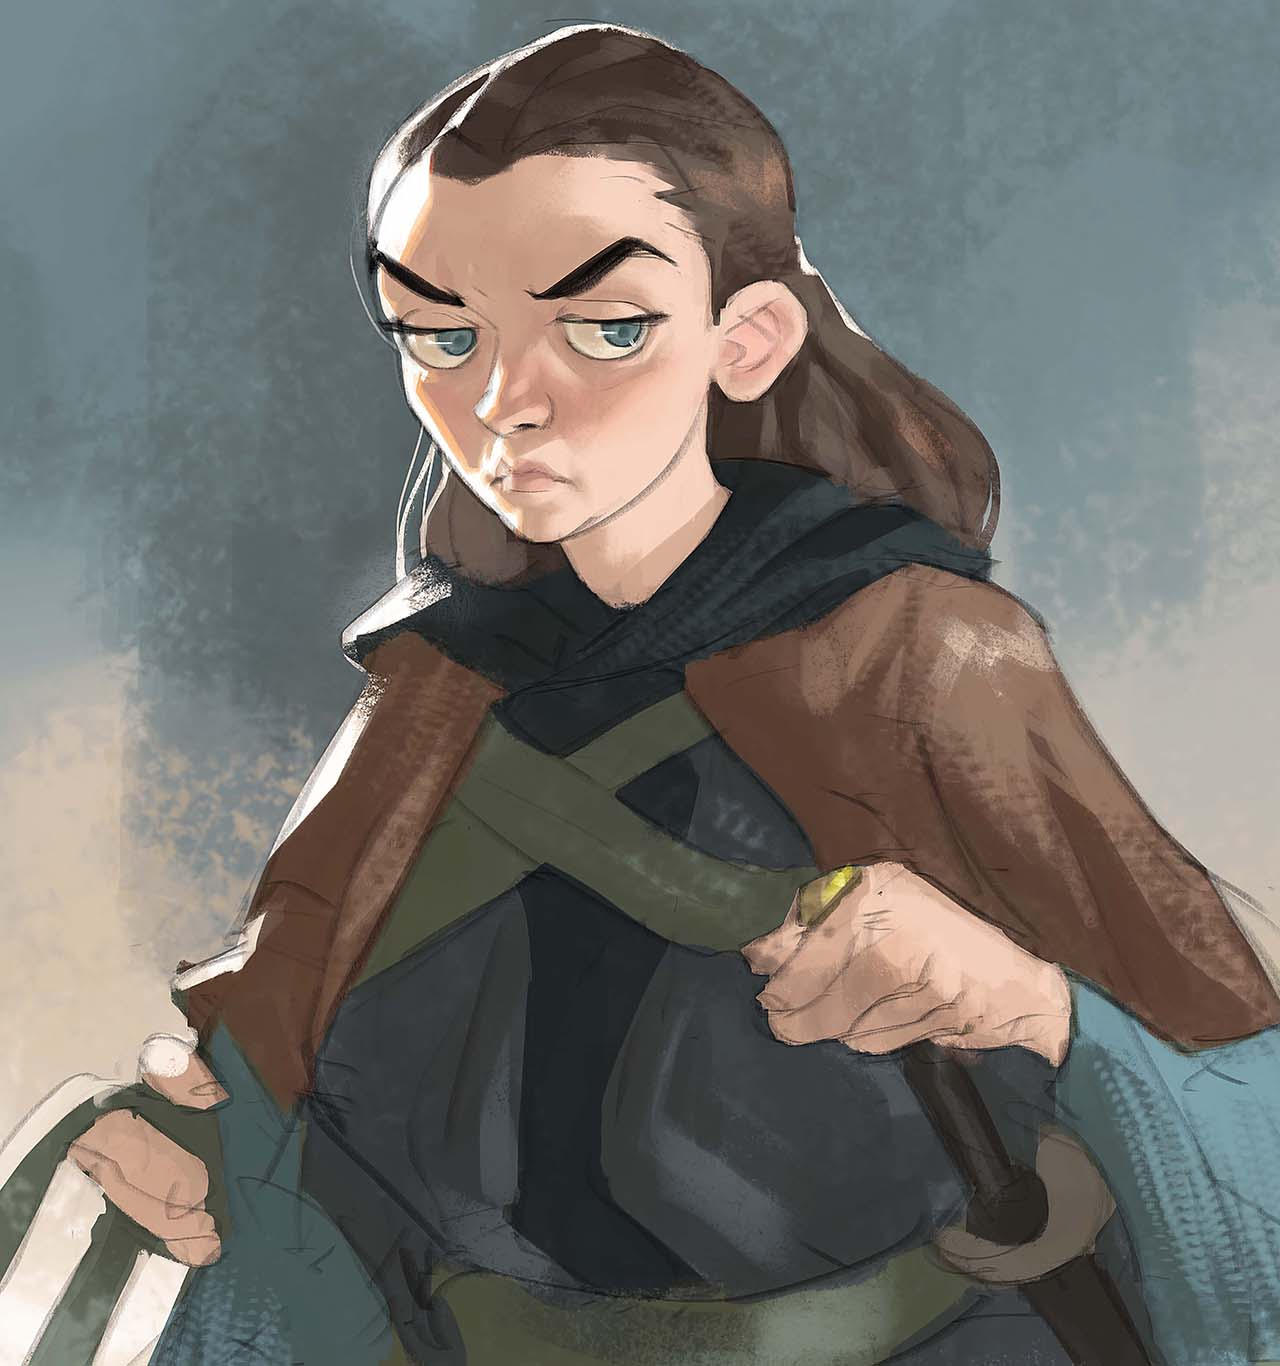 Artist Creates Unique Character Arts From Game Of Thrones – Arya Stark Character Art By Ramón Nuñez